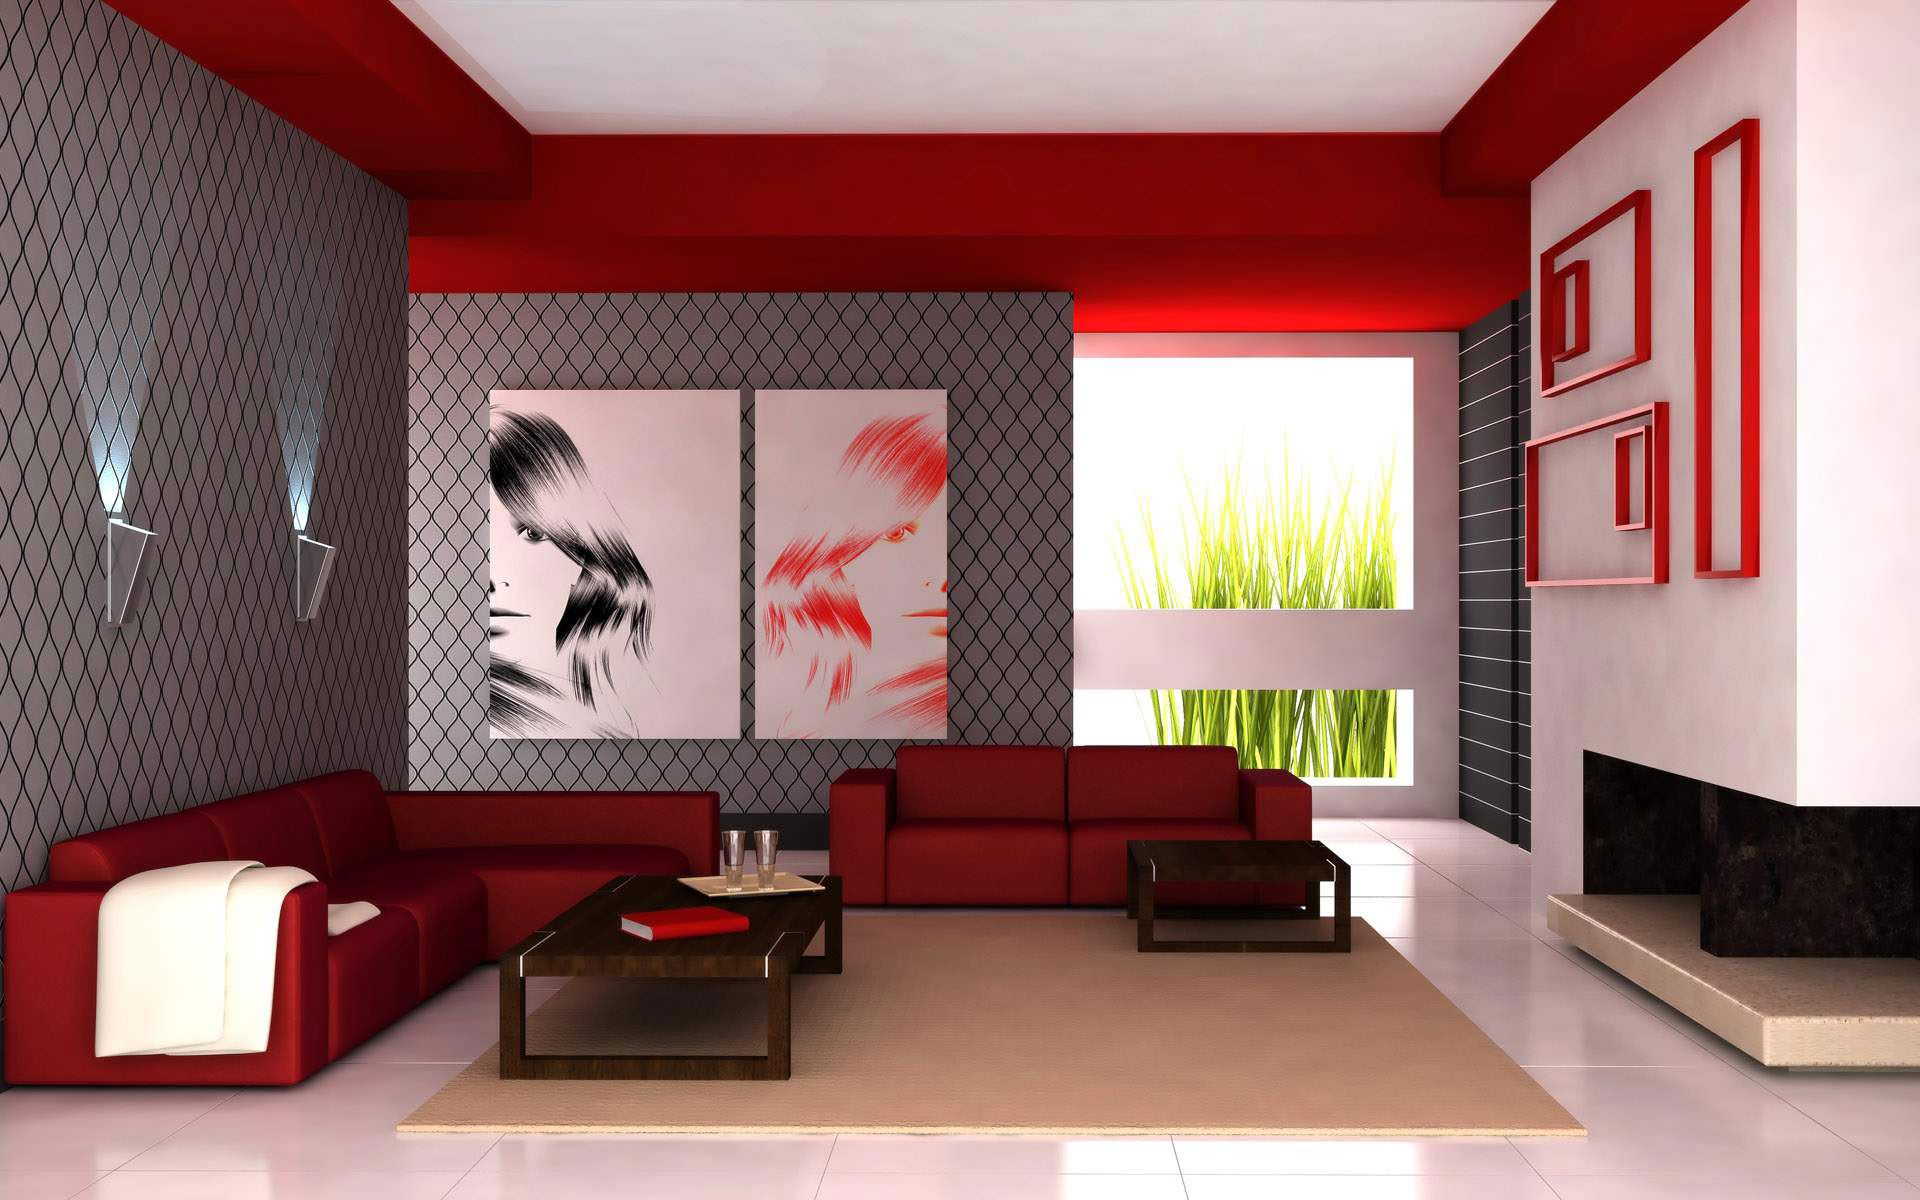 Modern Wallpaper Designs For Living Room Ide Pemilihan Warna Cat Rumah Minimalis Http Wwwrumahidealis